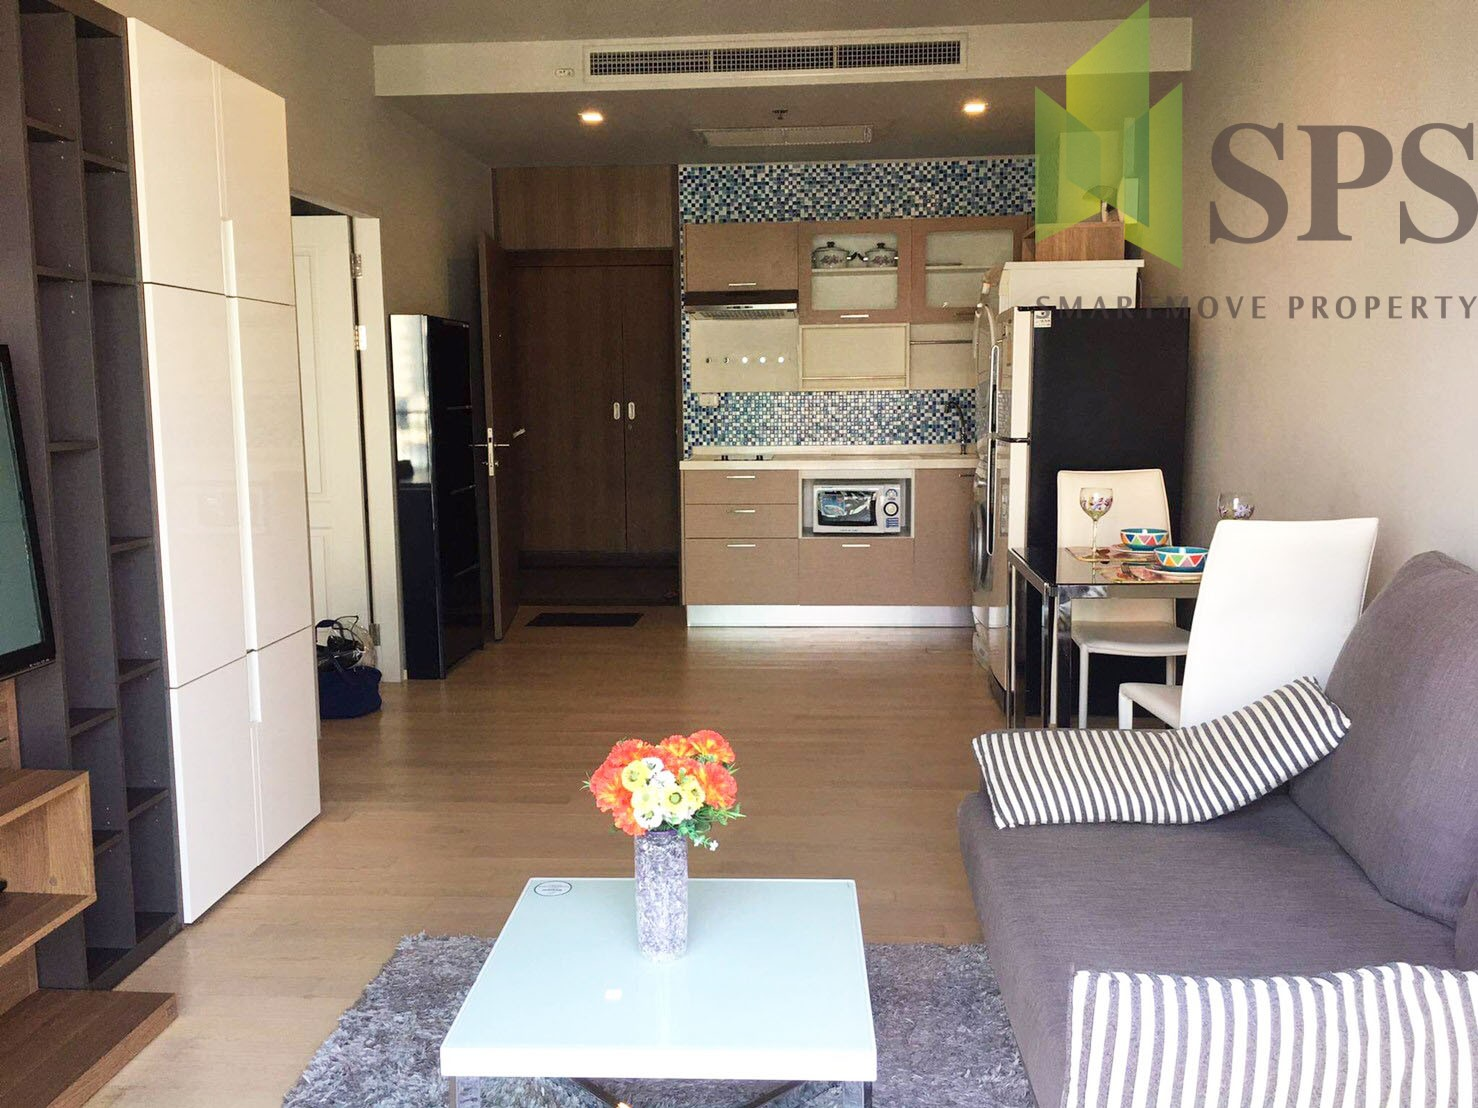 FOR RENT!!!! NOBLE REFINE SUKHUMVIT26 Ready to move in!!! 300M from BTS PHROMPONG (SPS-LN-NB26-16)